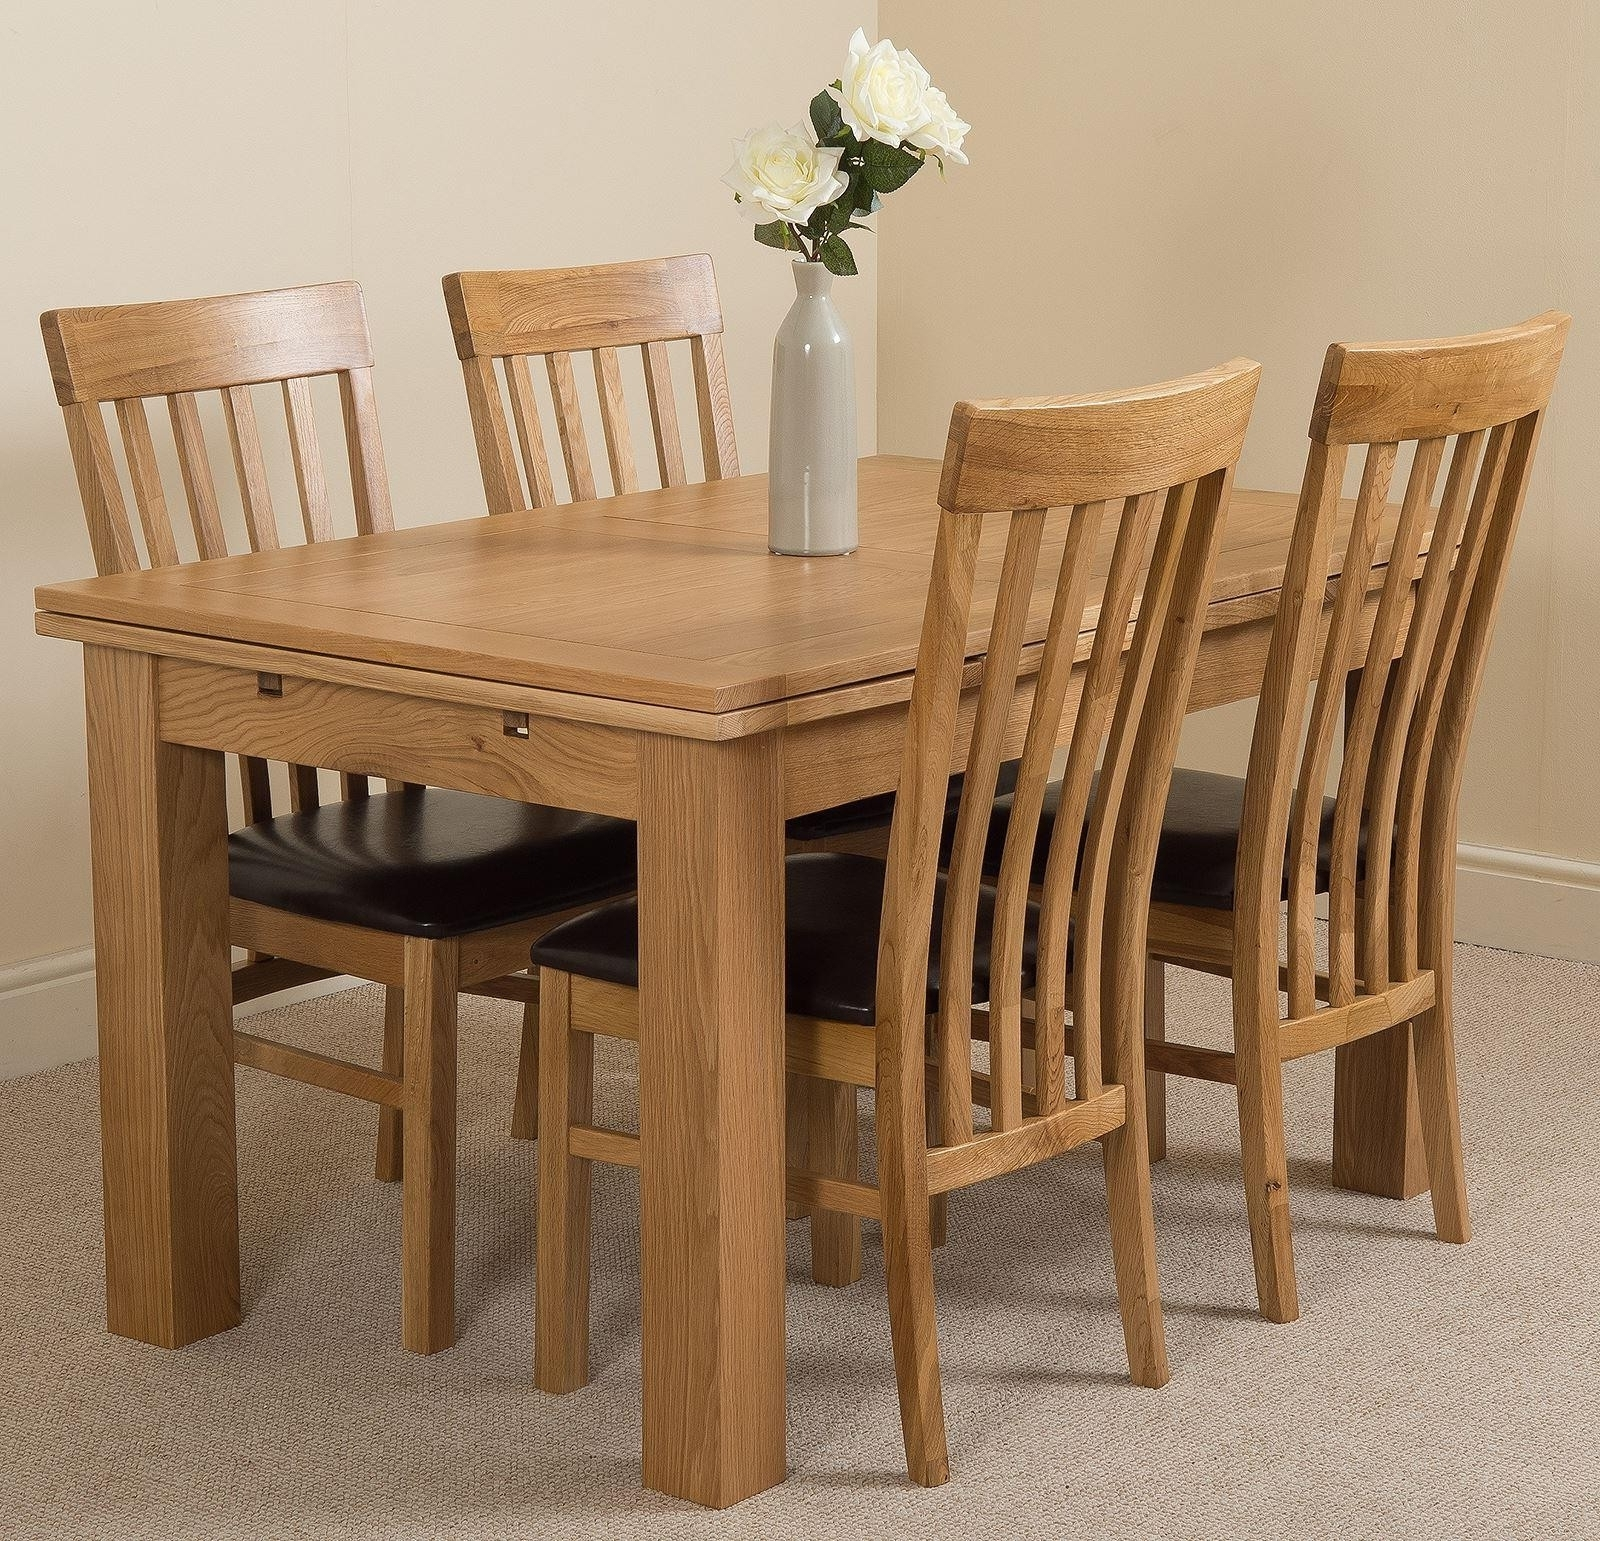 Best And Newest Richmond Oak Small Dining Set 4 Harvard Chairs Throughout Extendable Dining Table And 4 Chairs (View 1 of 25)